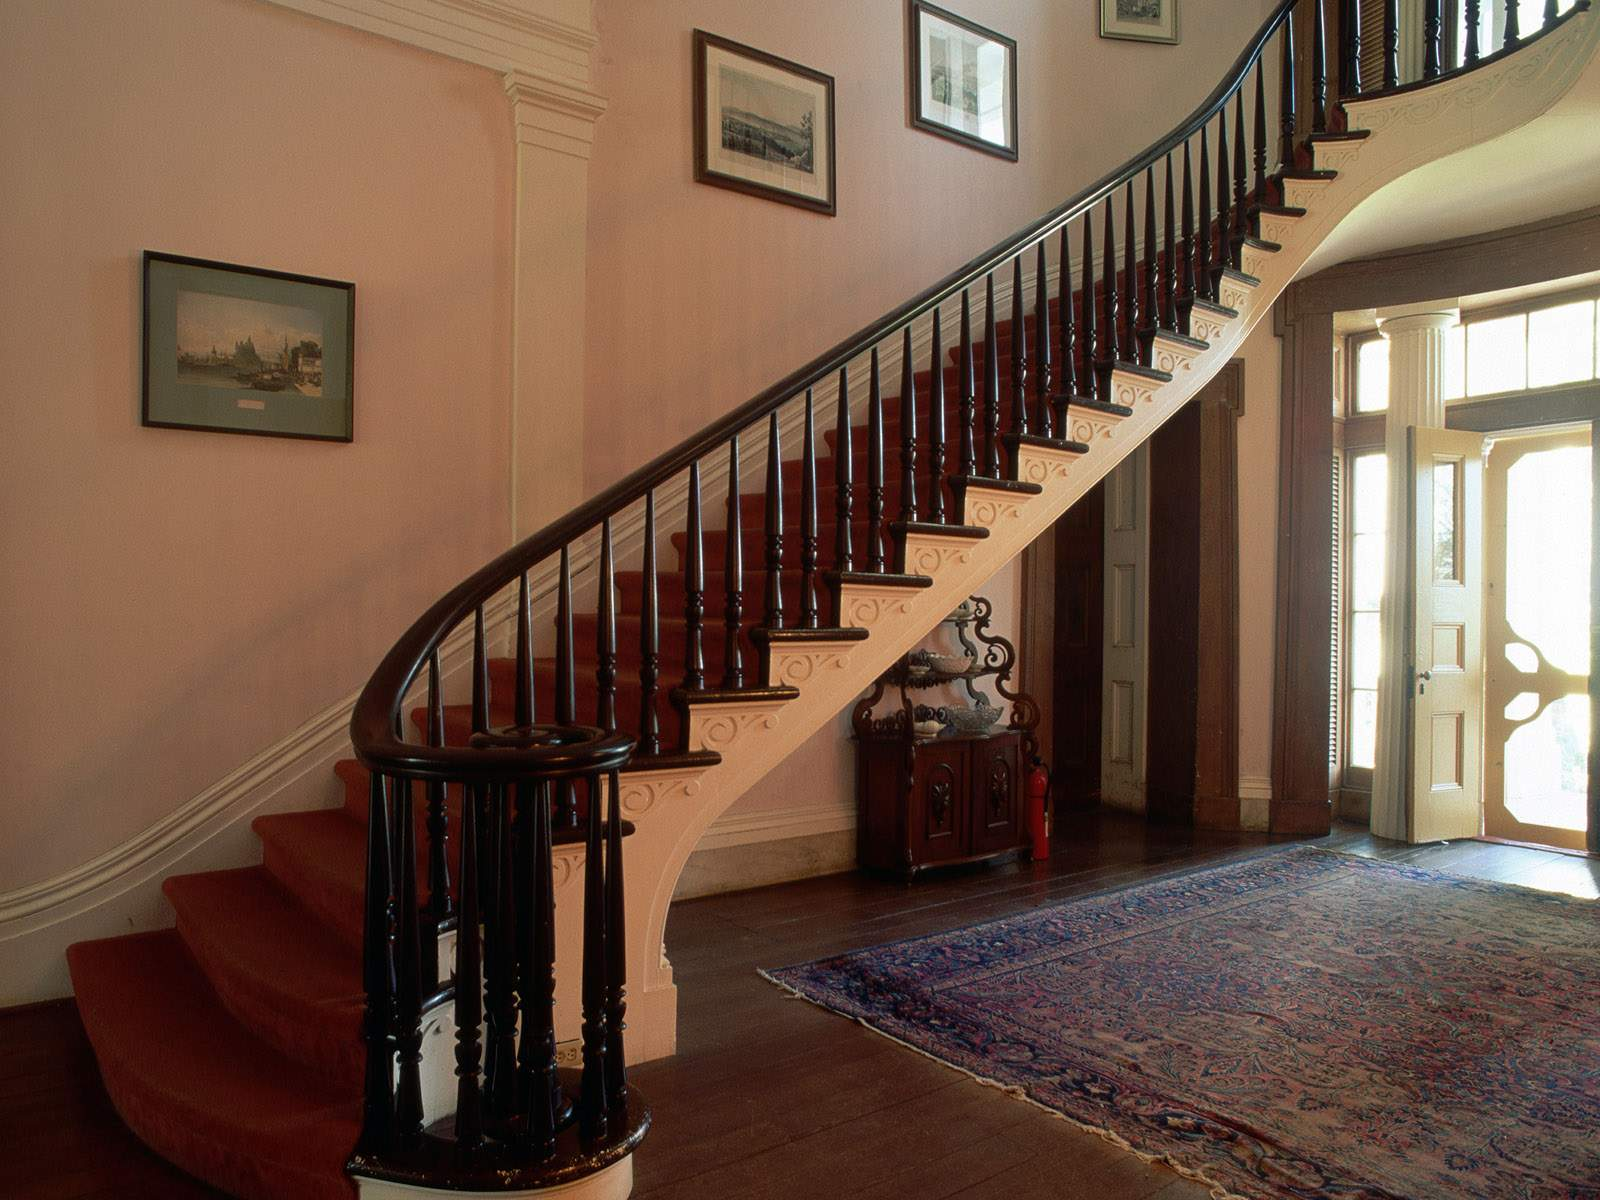 Wood stair railings interior design for Stair designs interior